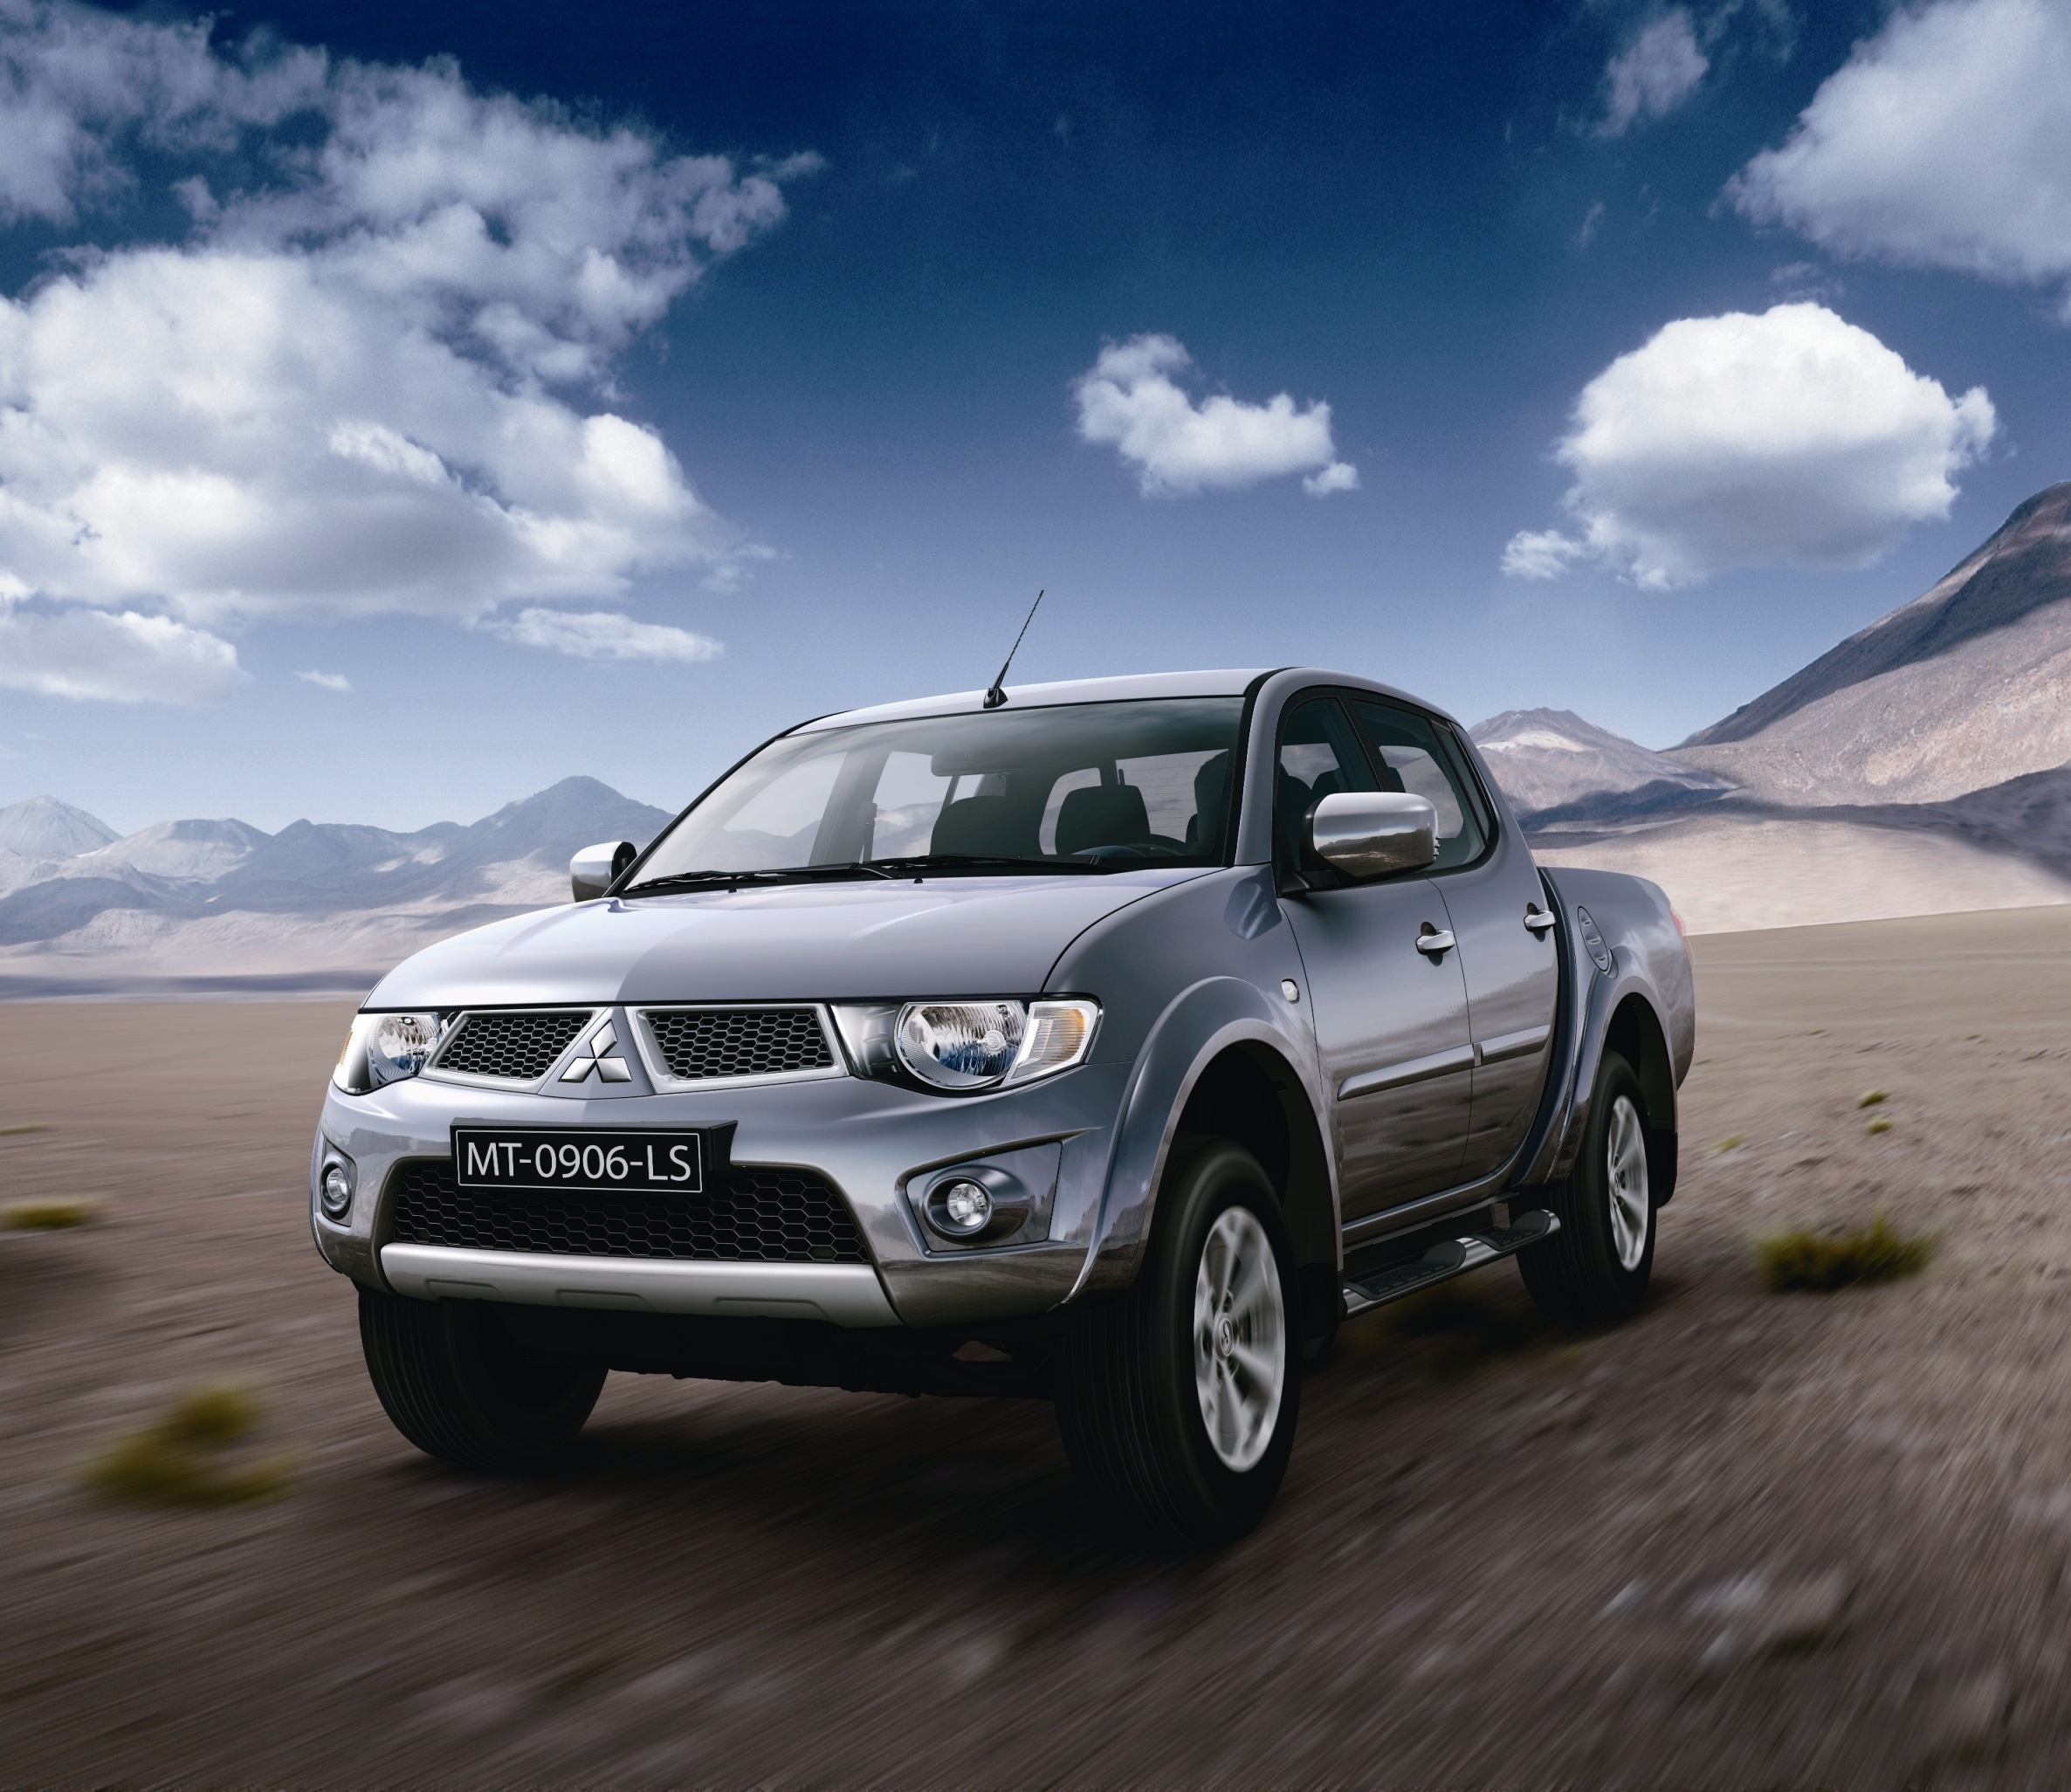 Mitsubishi Car Wallpaper: High Quality Picture Of Mitsubishi L200, Wallpaper Of Cars